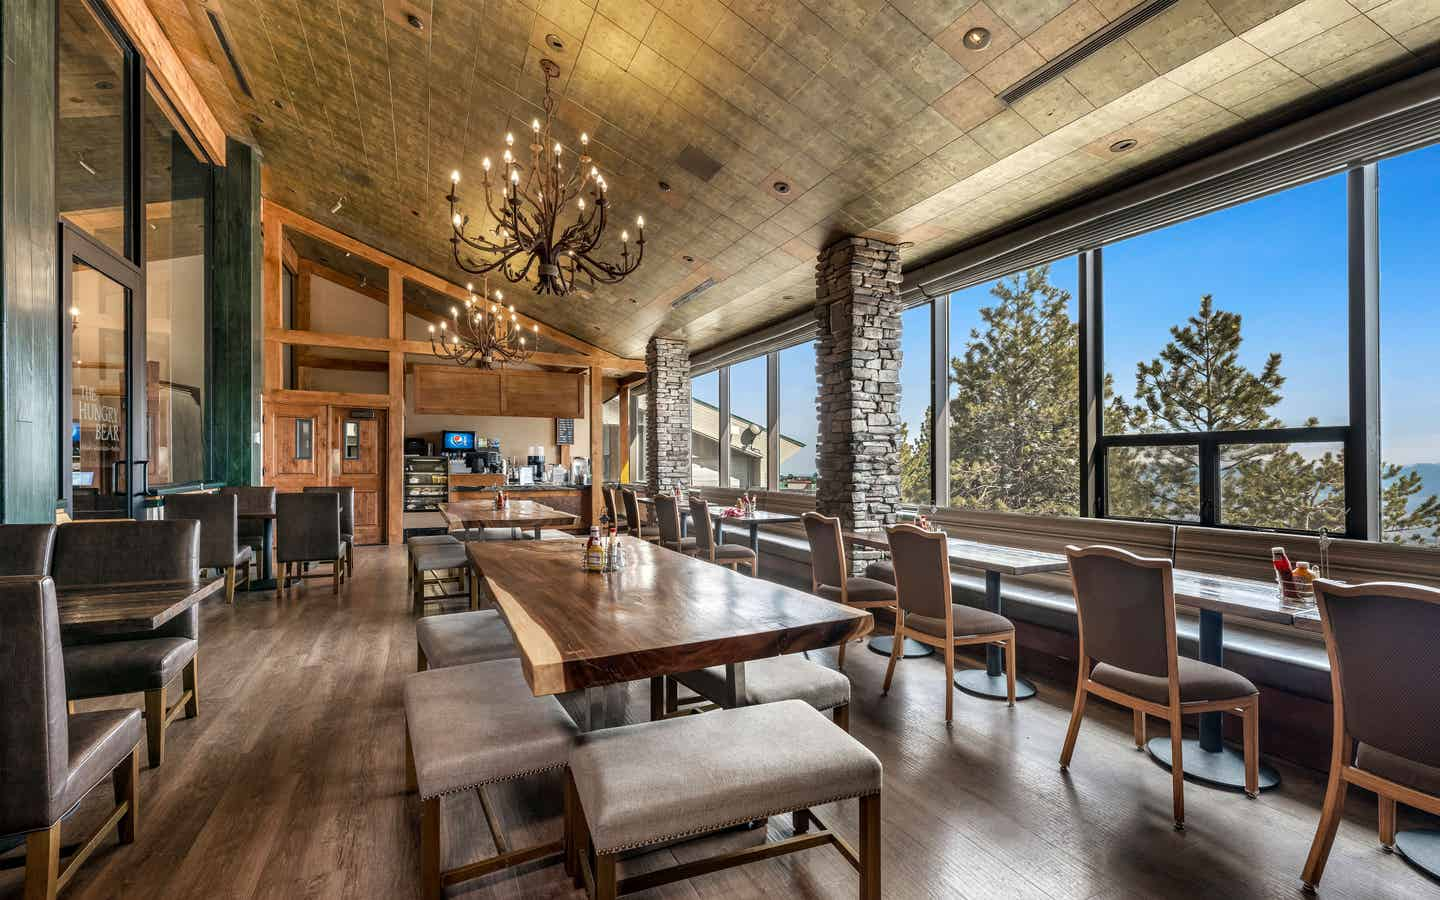 Bistro with a view of Sierra Nevada Mountains at Tahoe Ridge Resort in Stateline, Nevada.